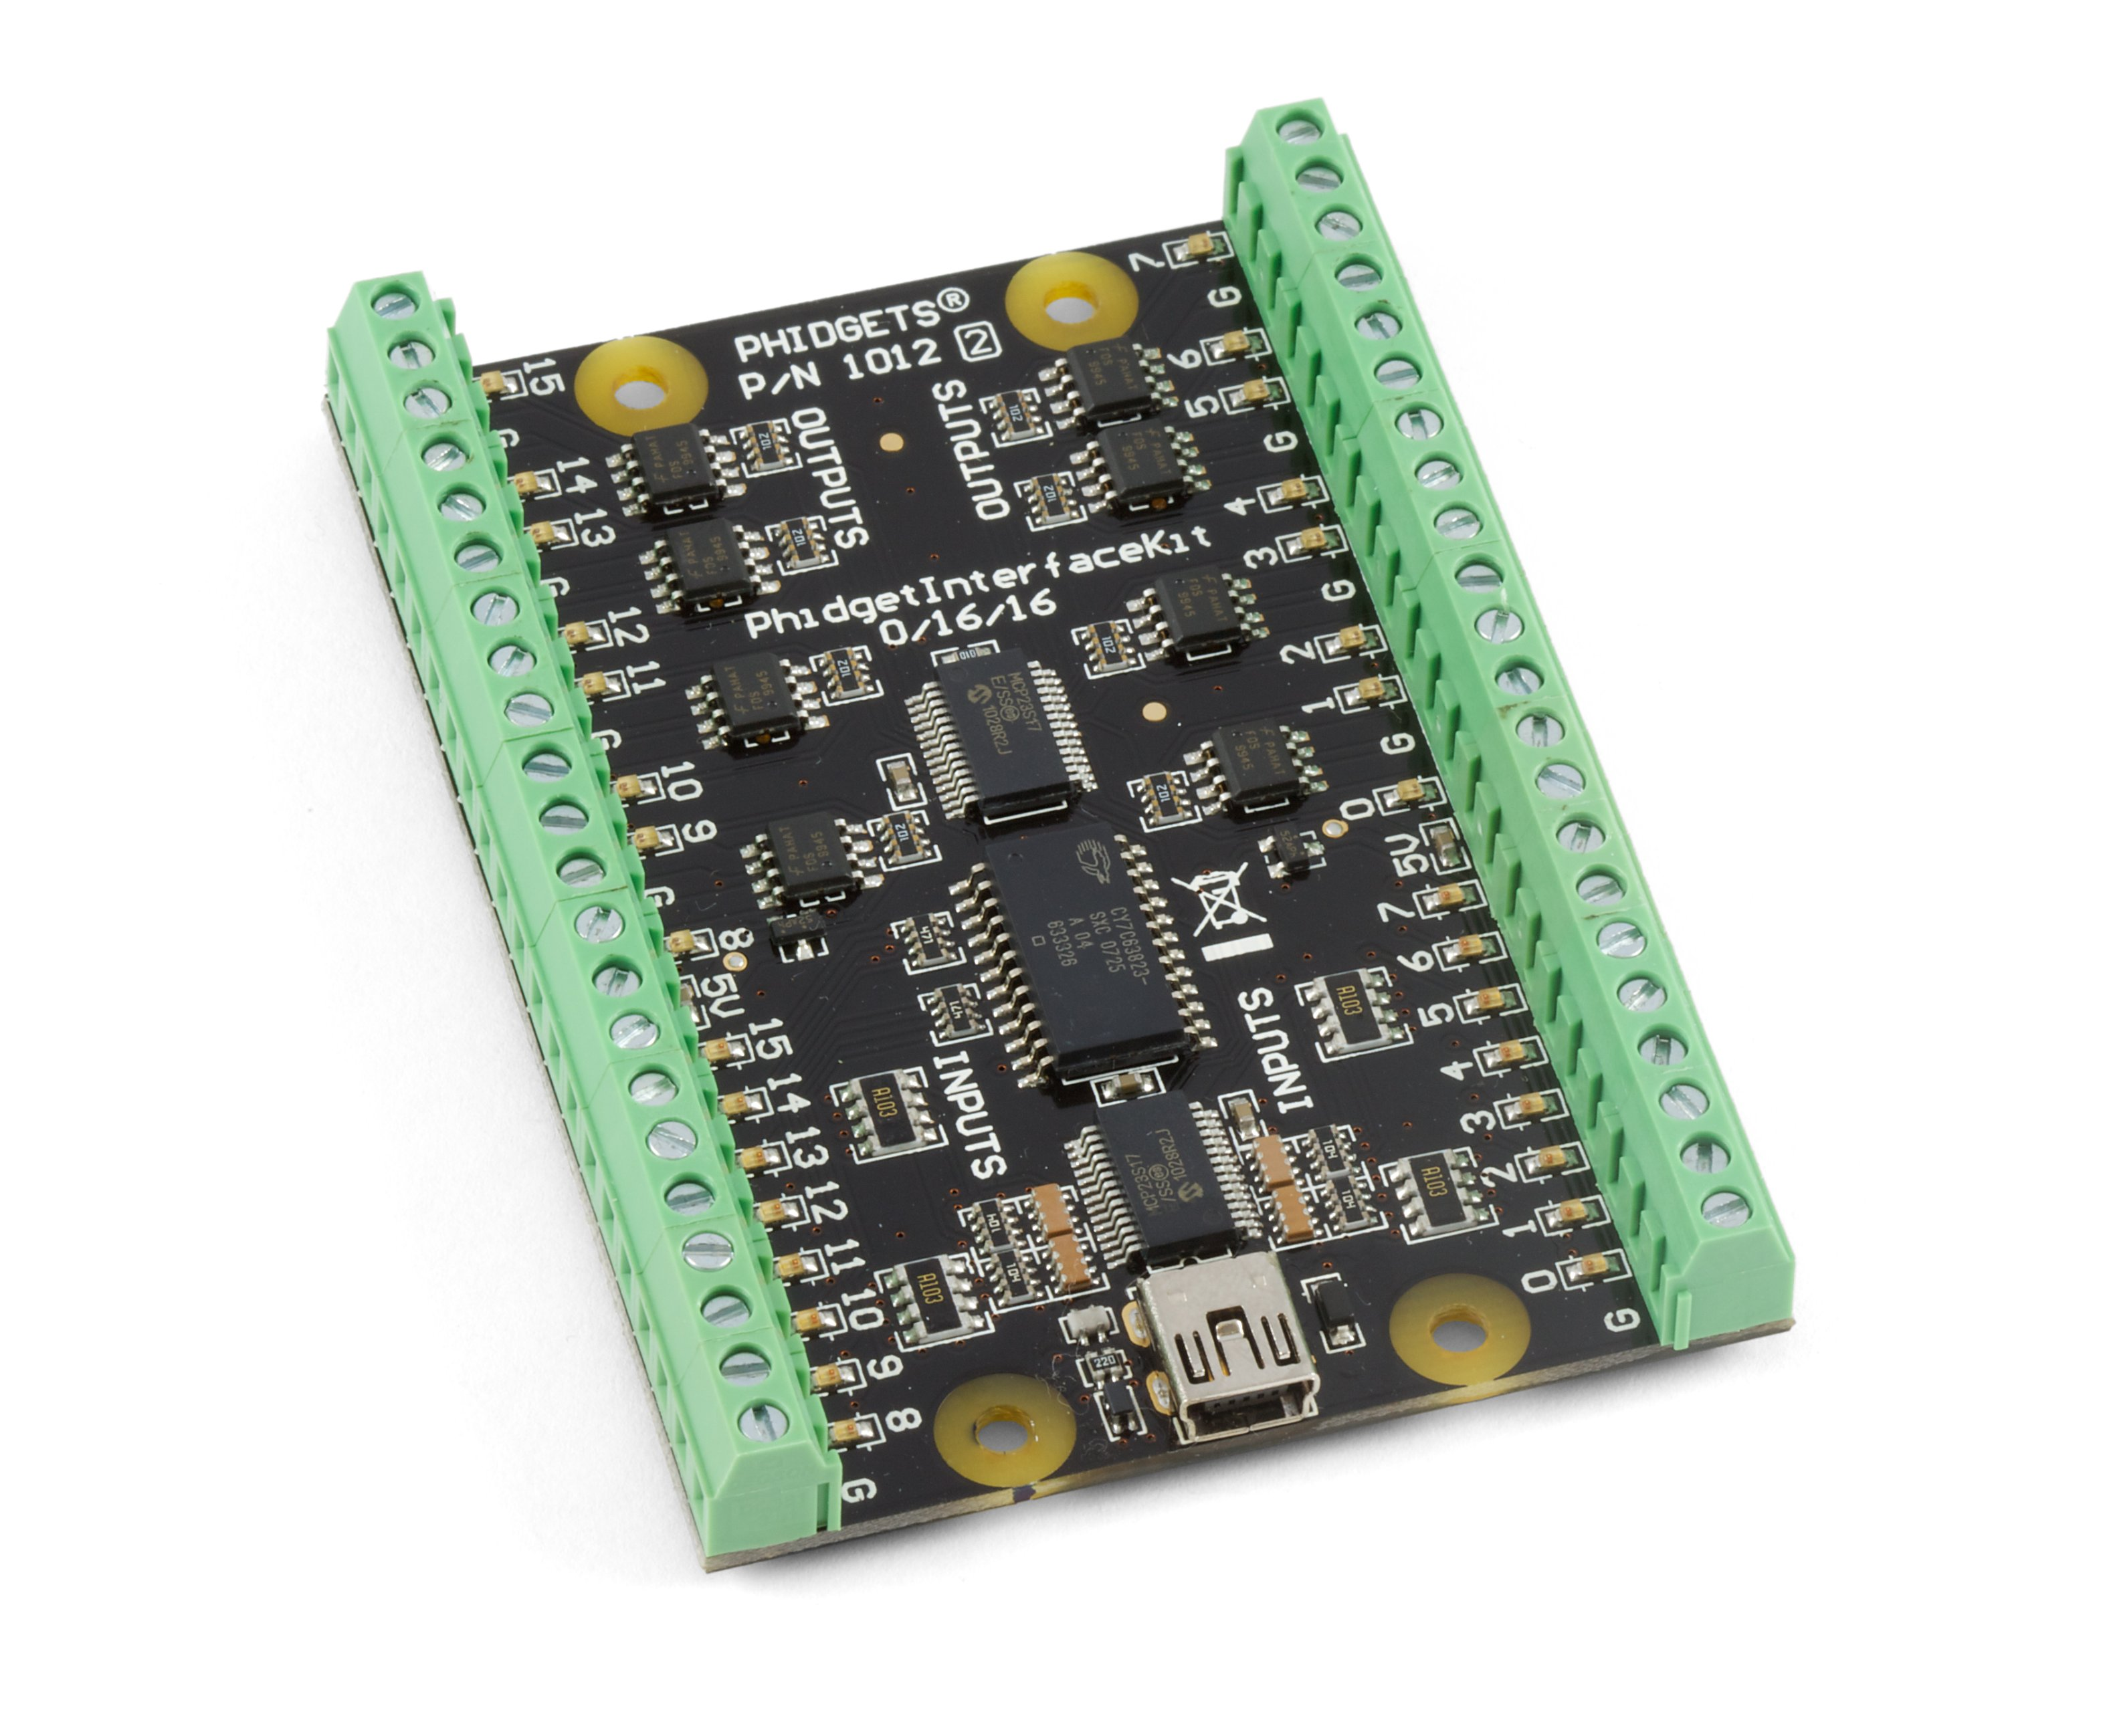 Phidgetinterfacekit 0 16 1012 2b At Phidgets Next The Four Relay Outputs From Remote Control Inbuilt Relays Channel Digital Input Output Phidget